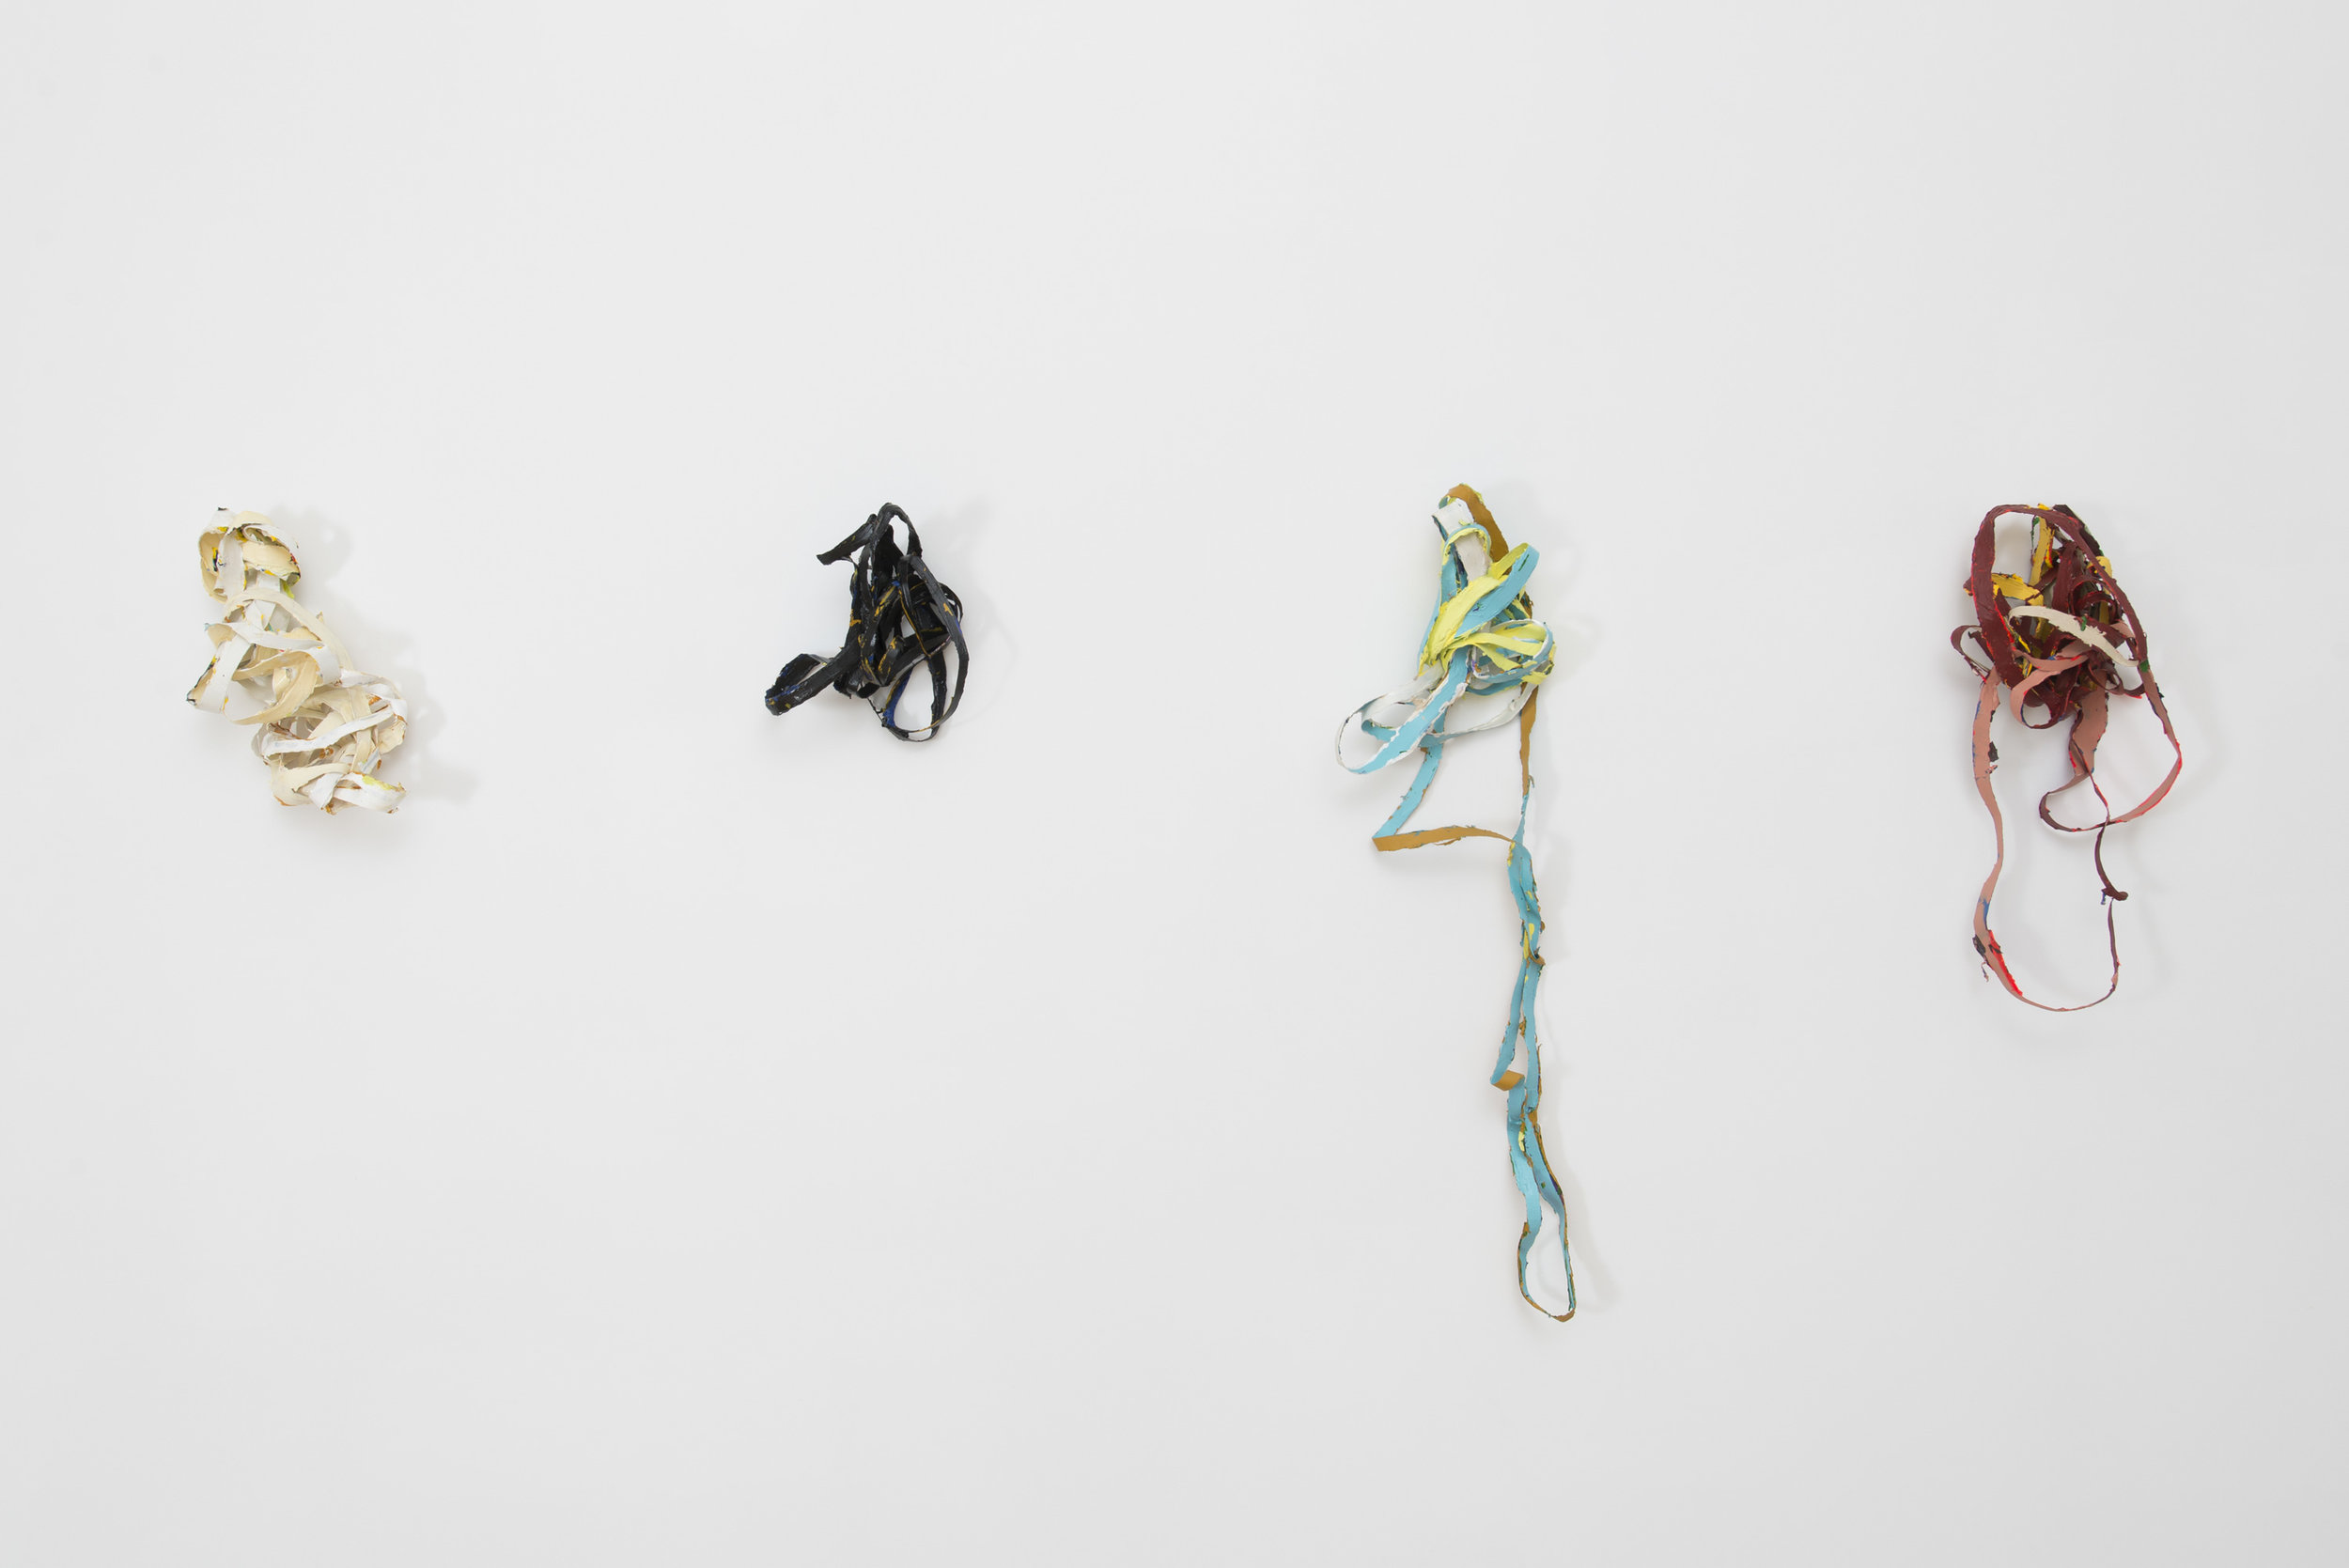 Alison O'Daniel,  Quasi-Closed Captions , installation view, 2013.